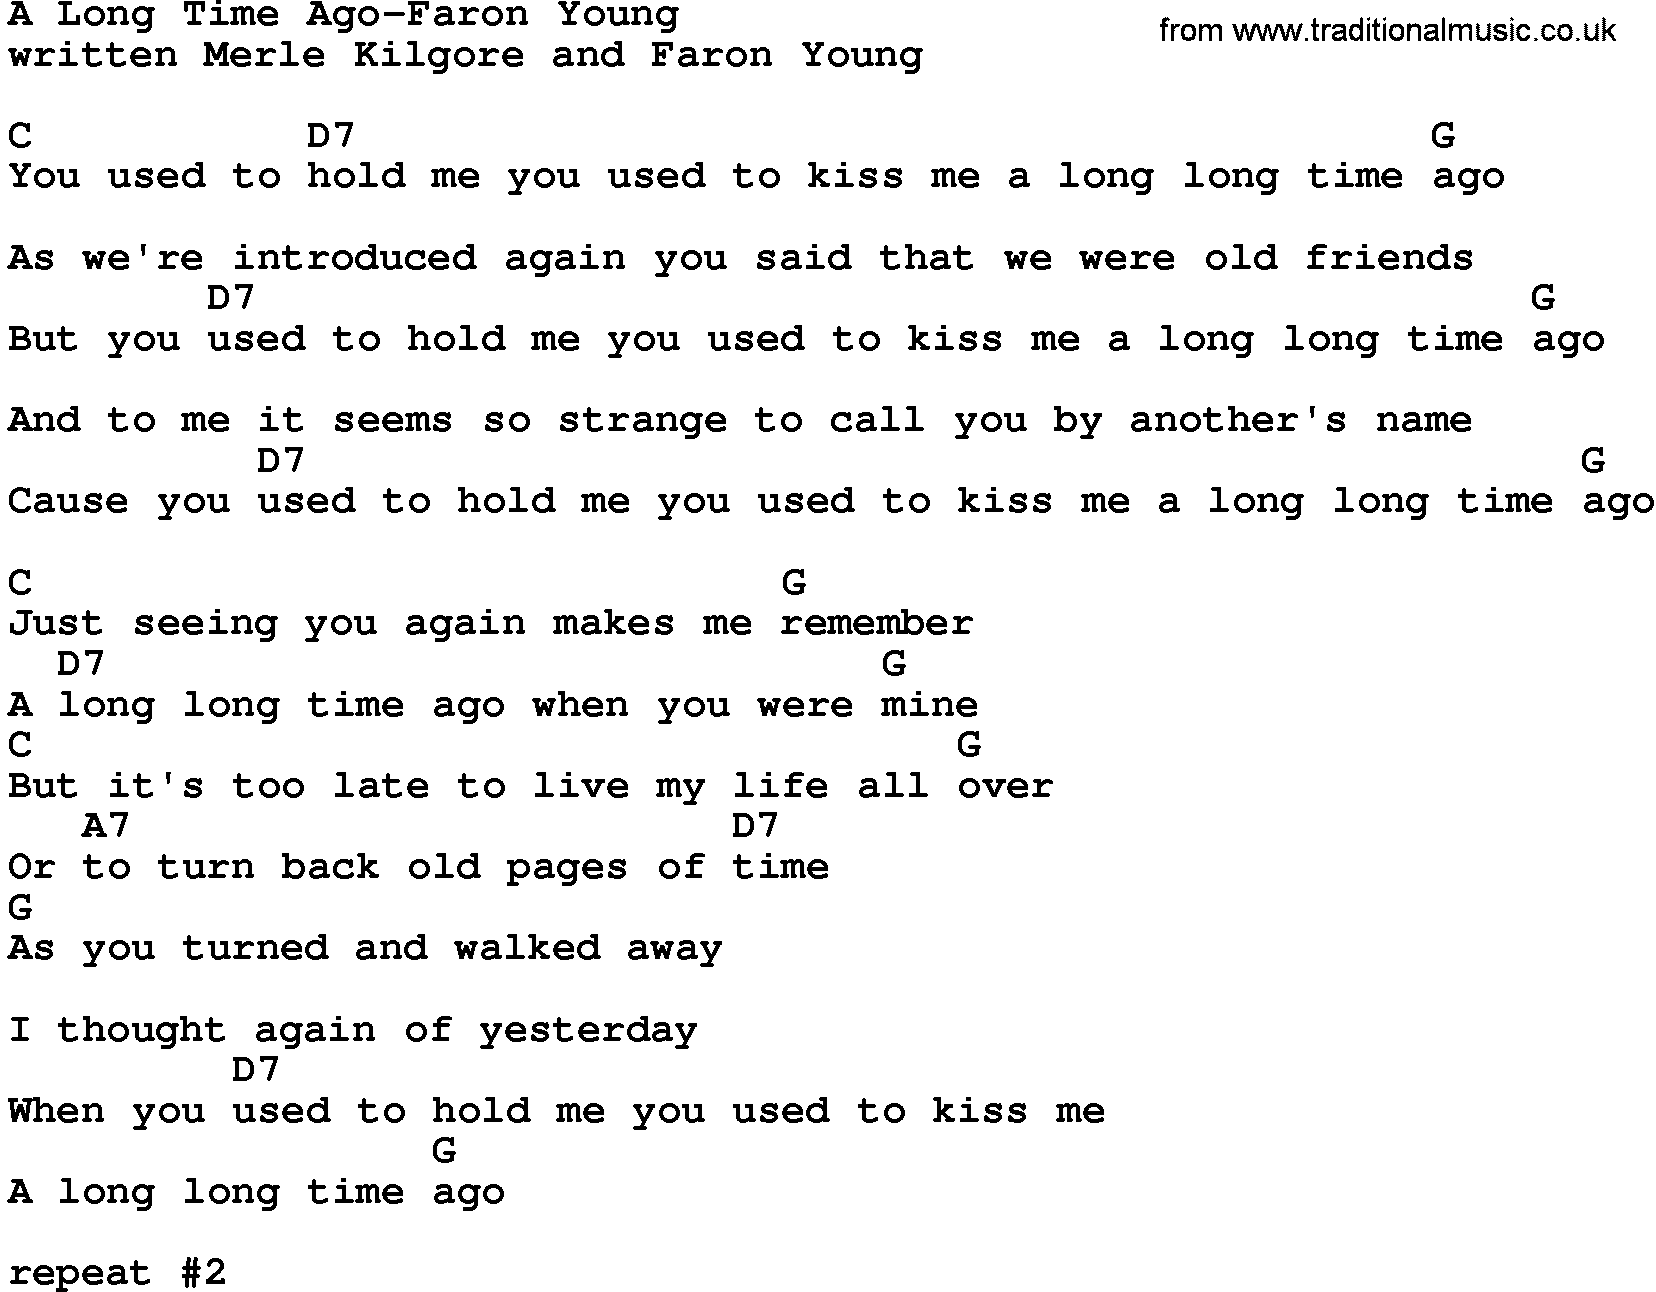 Country musica long time ago faron young lyrics and chords hexwebz Image collections